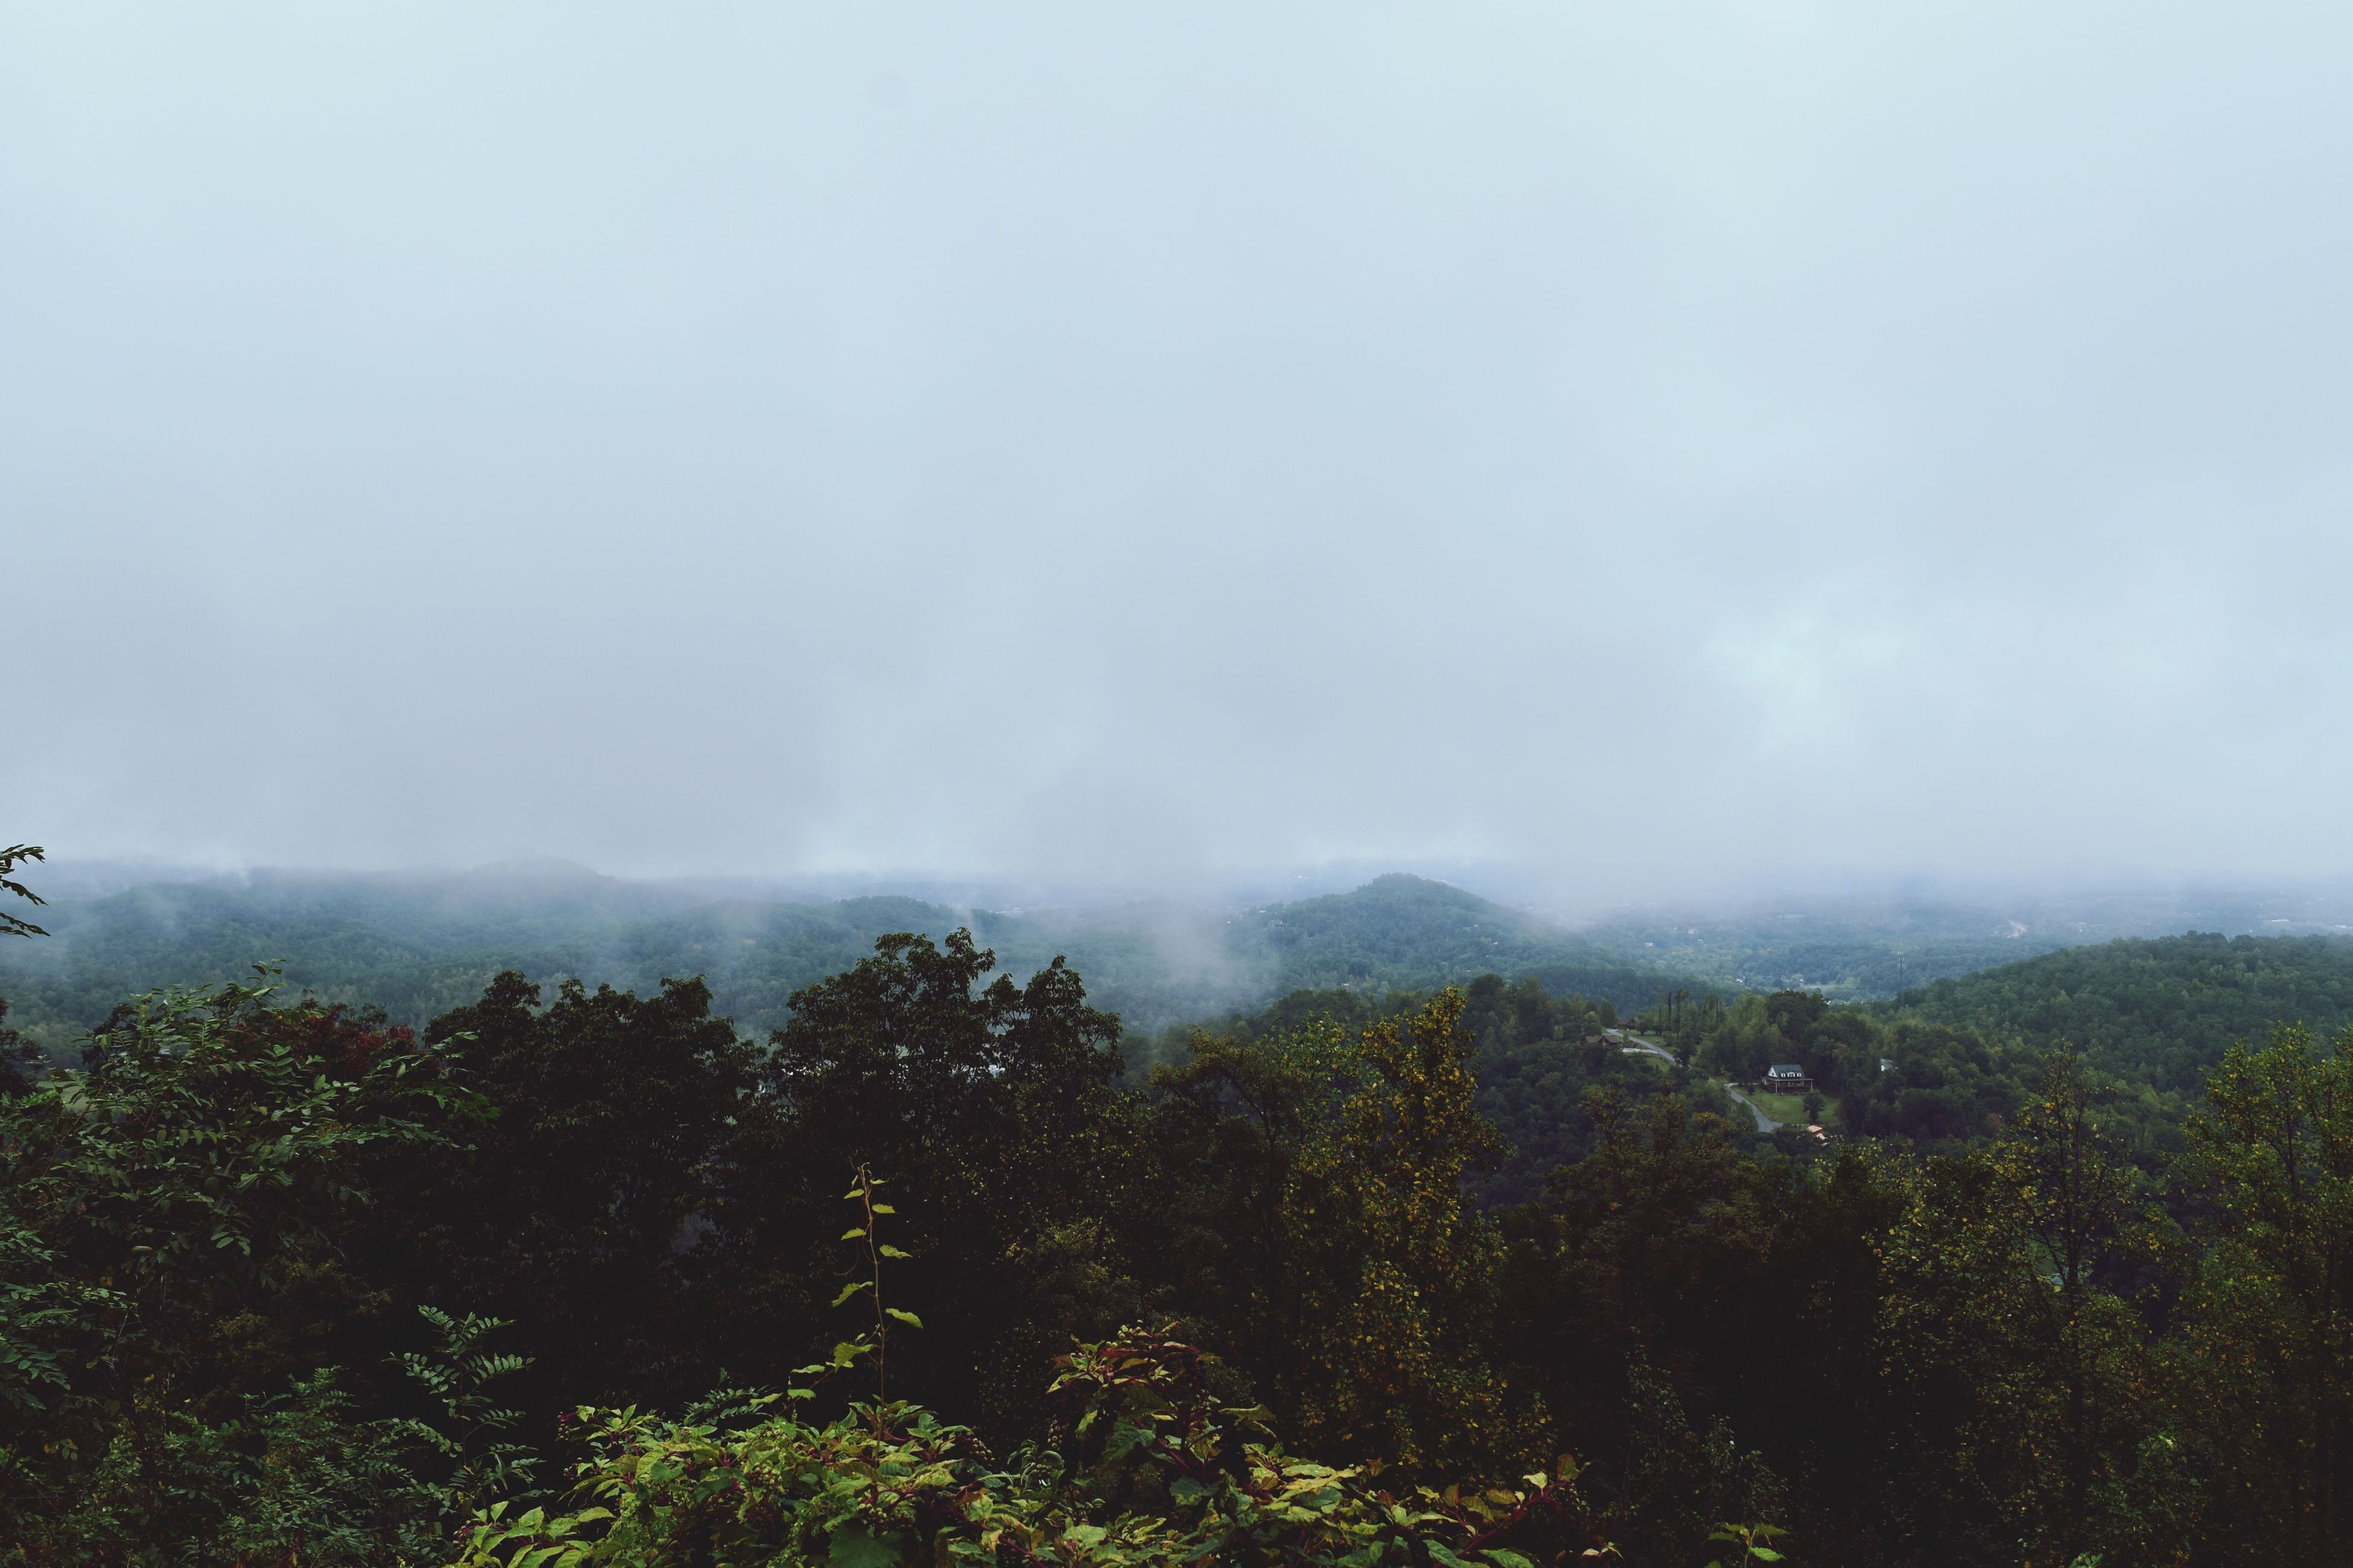 fog, foggy, beauty in nature, scenics, weather, tranquility, mountain, tranquil scene, tree, nature, landscape, copy space, sky, growth, idyllic, non-urban scene, day, outdoors, no people